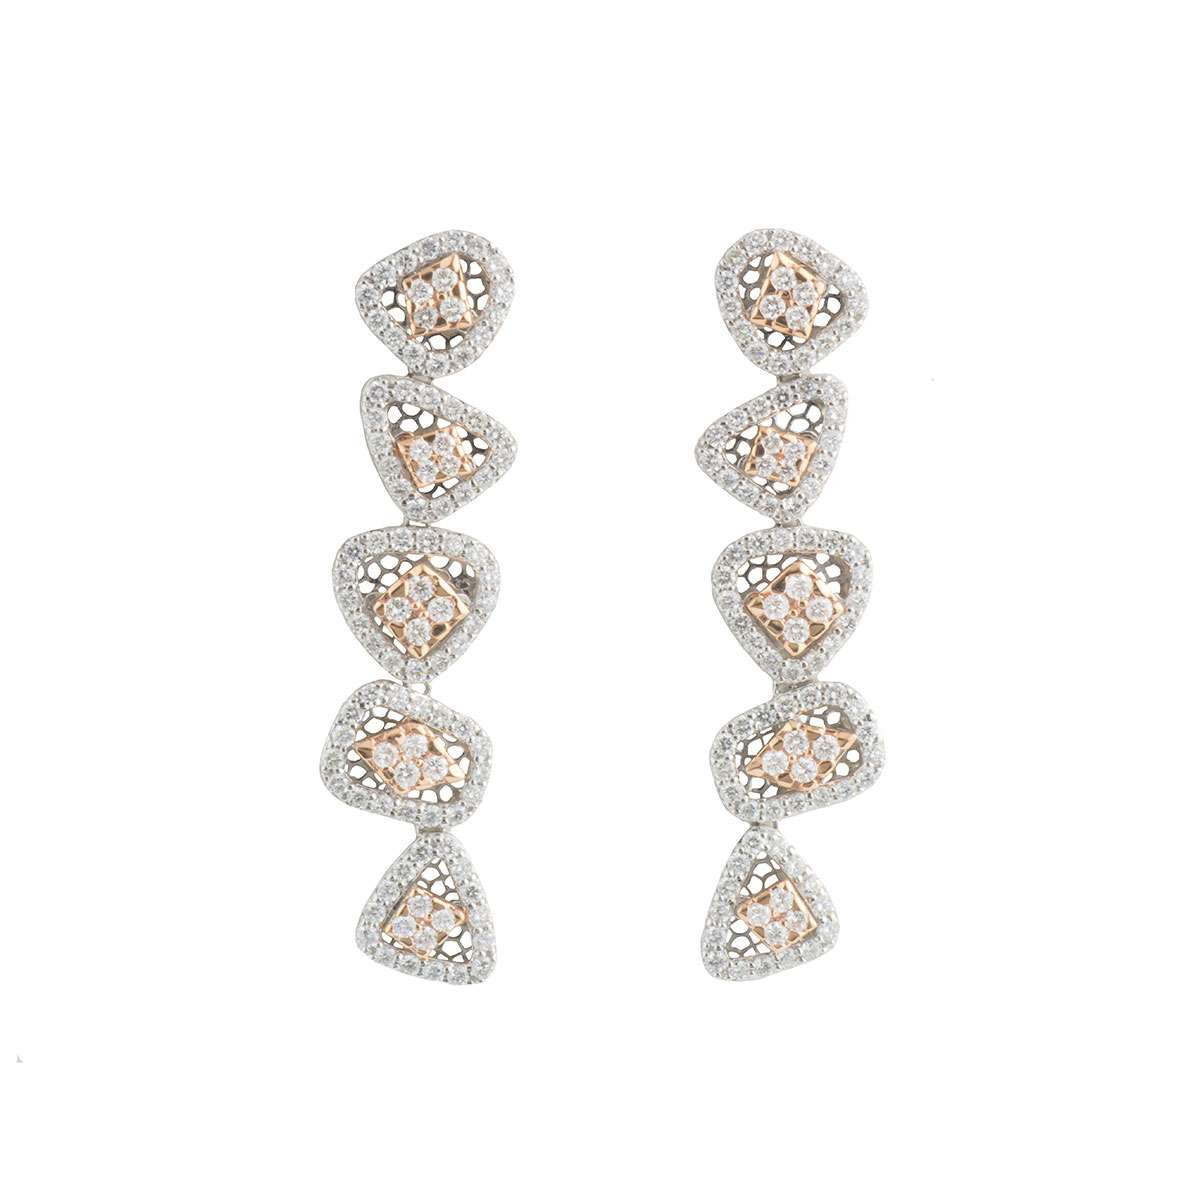 White and Rose Gold Diamond Drop Earrings 3.33ct G-H/VS